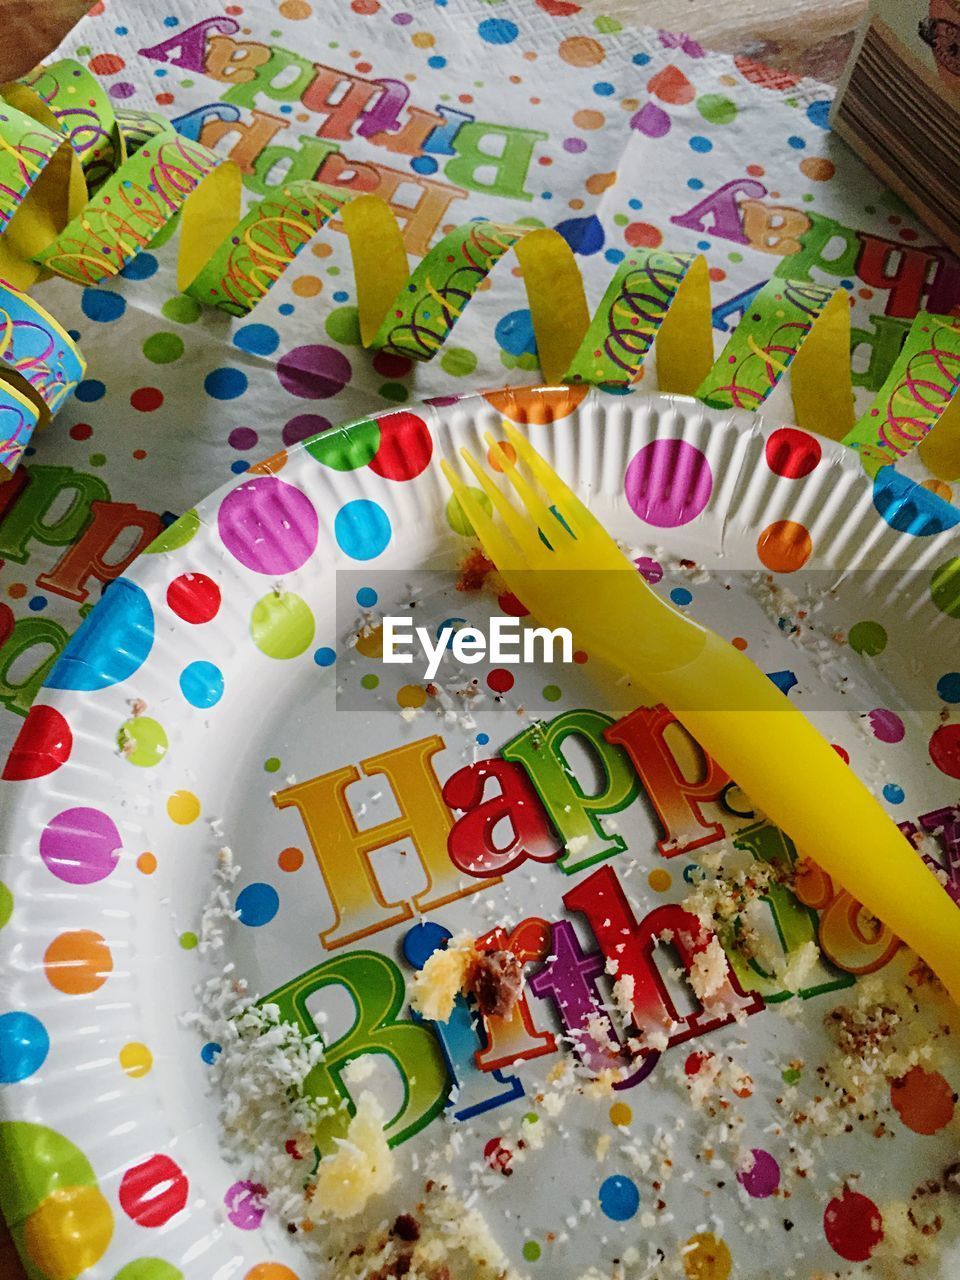 Elevated view of plate and fork after birthday party